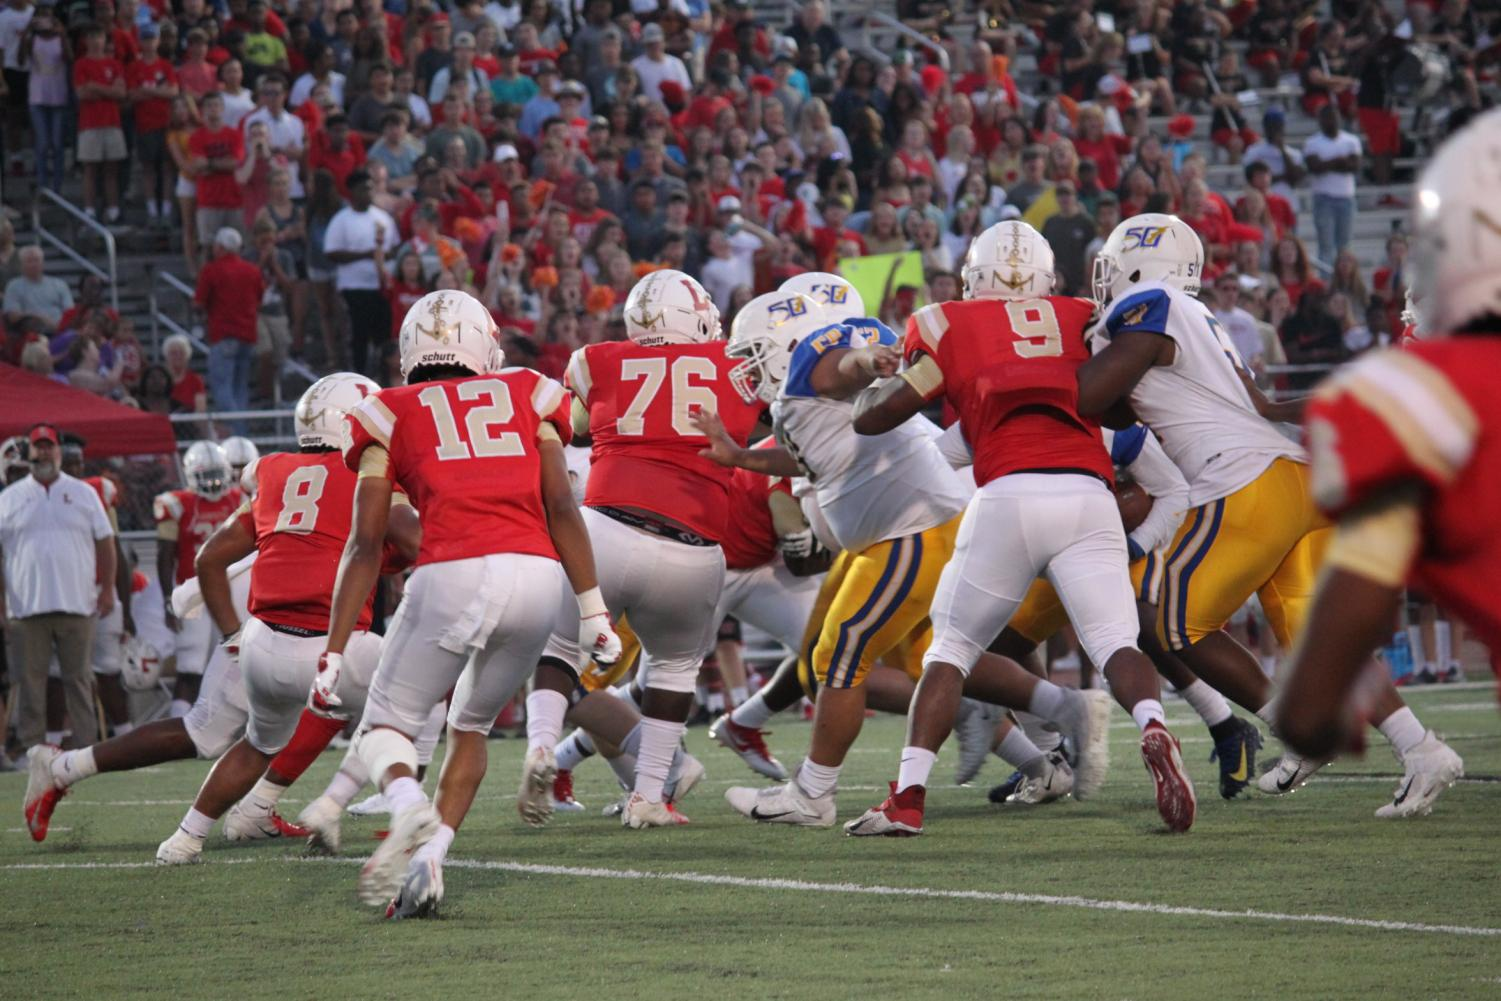 The Oxford offensive line battles against the Lafayette Commodore defensive line earlier in the season against Lafayette. Oxford won the game 46-7.